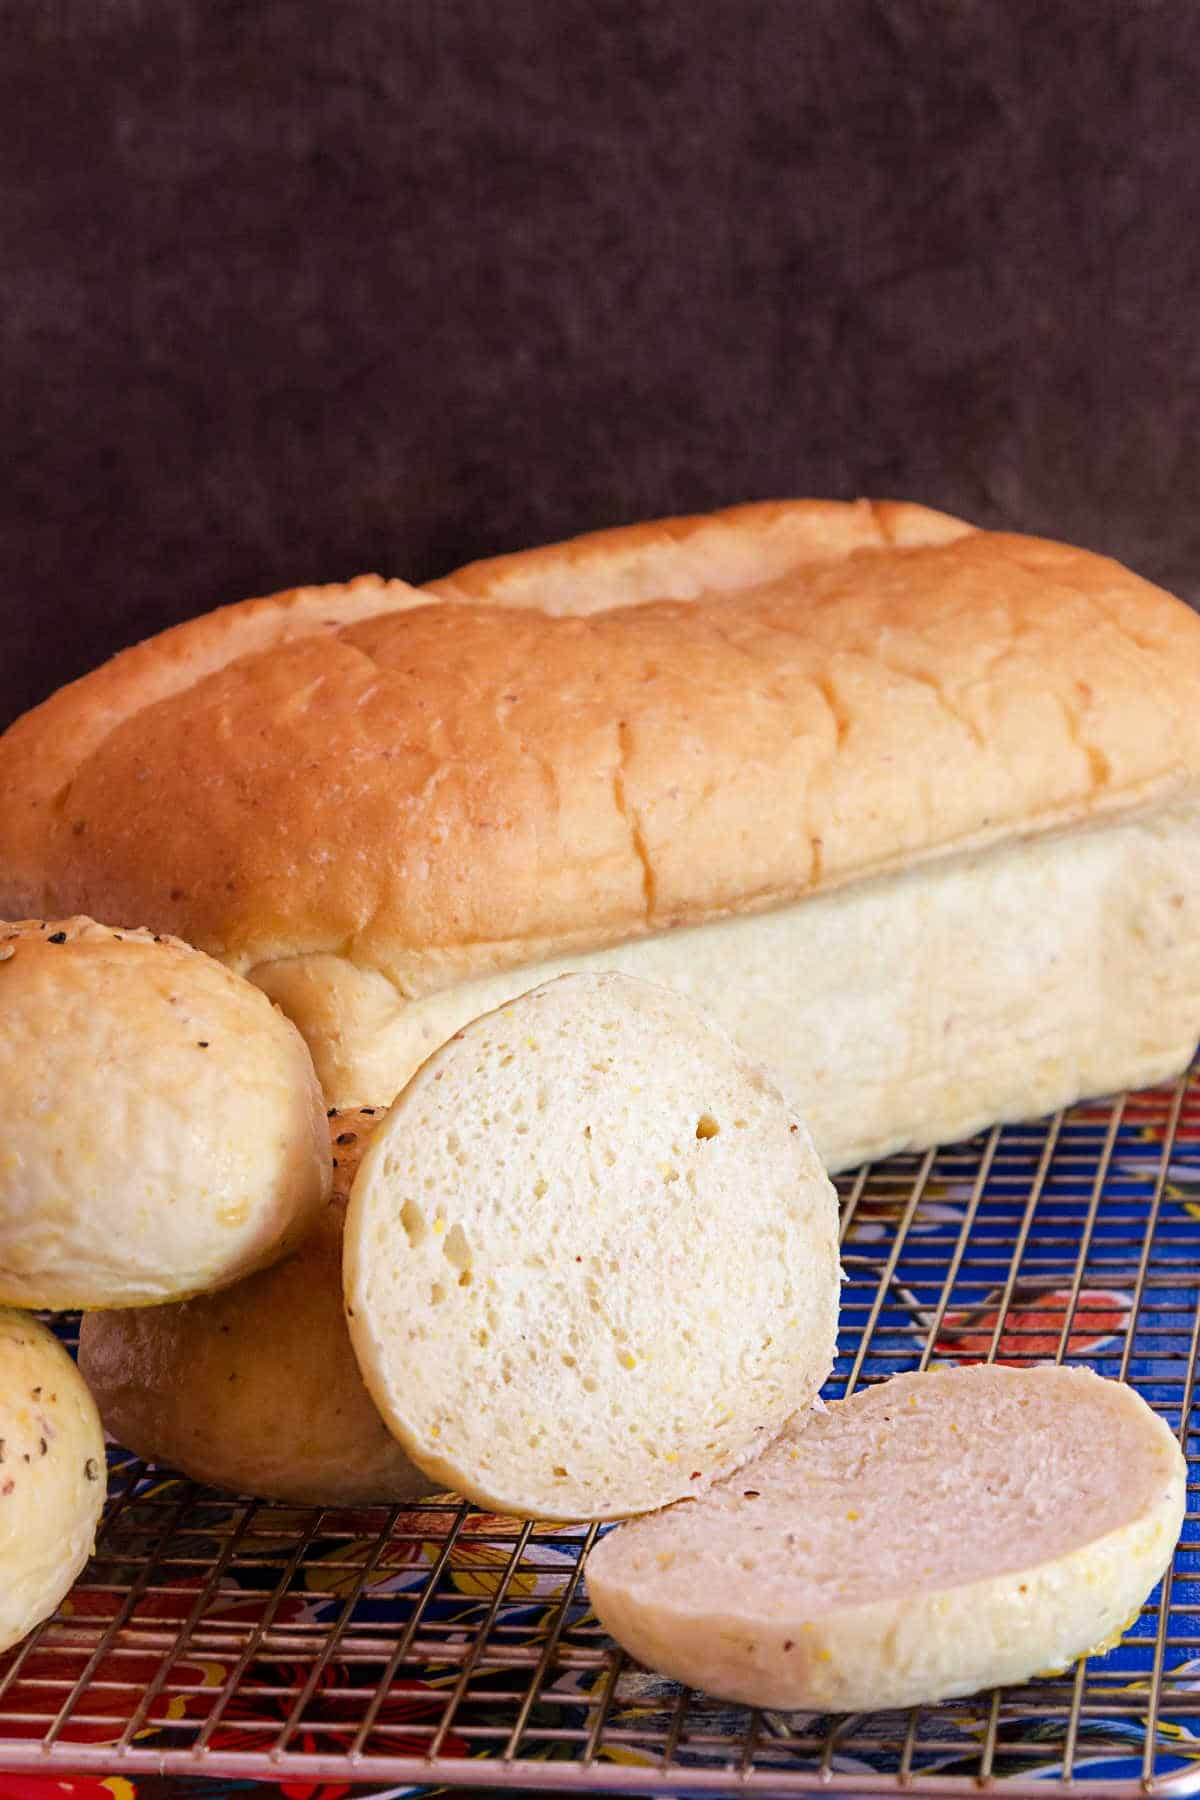 A fresh loaf of grits bread and a sliced bun on a cooling rack.